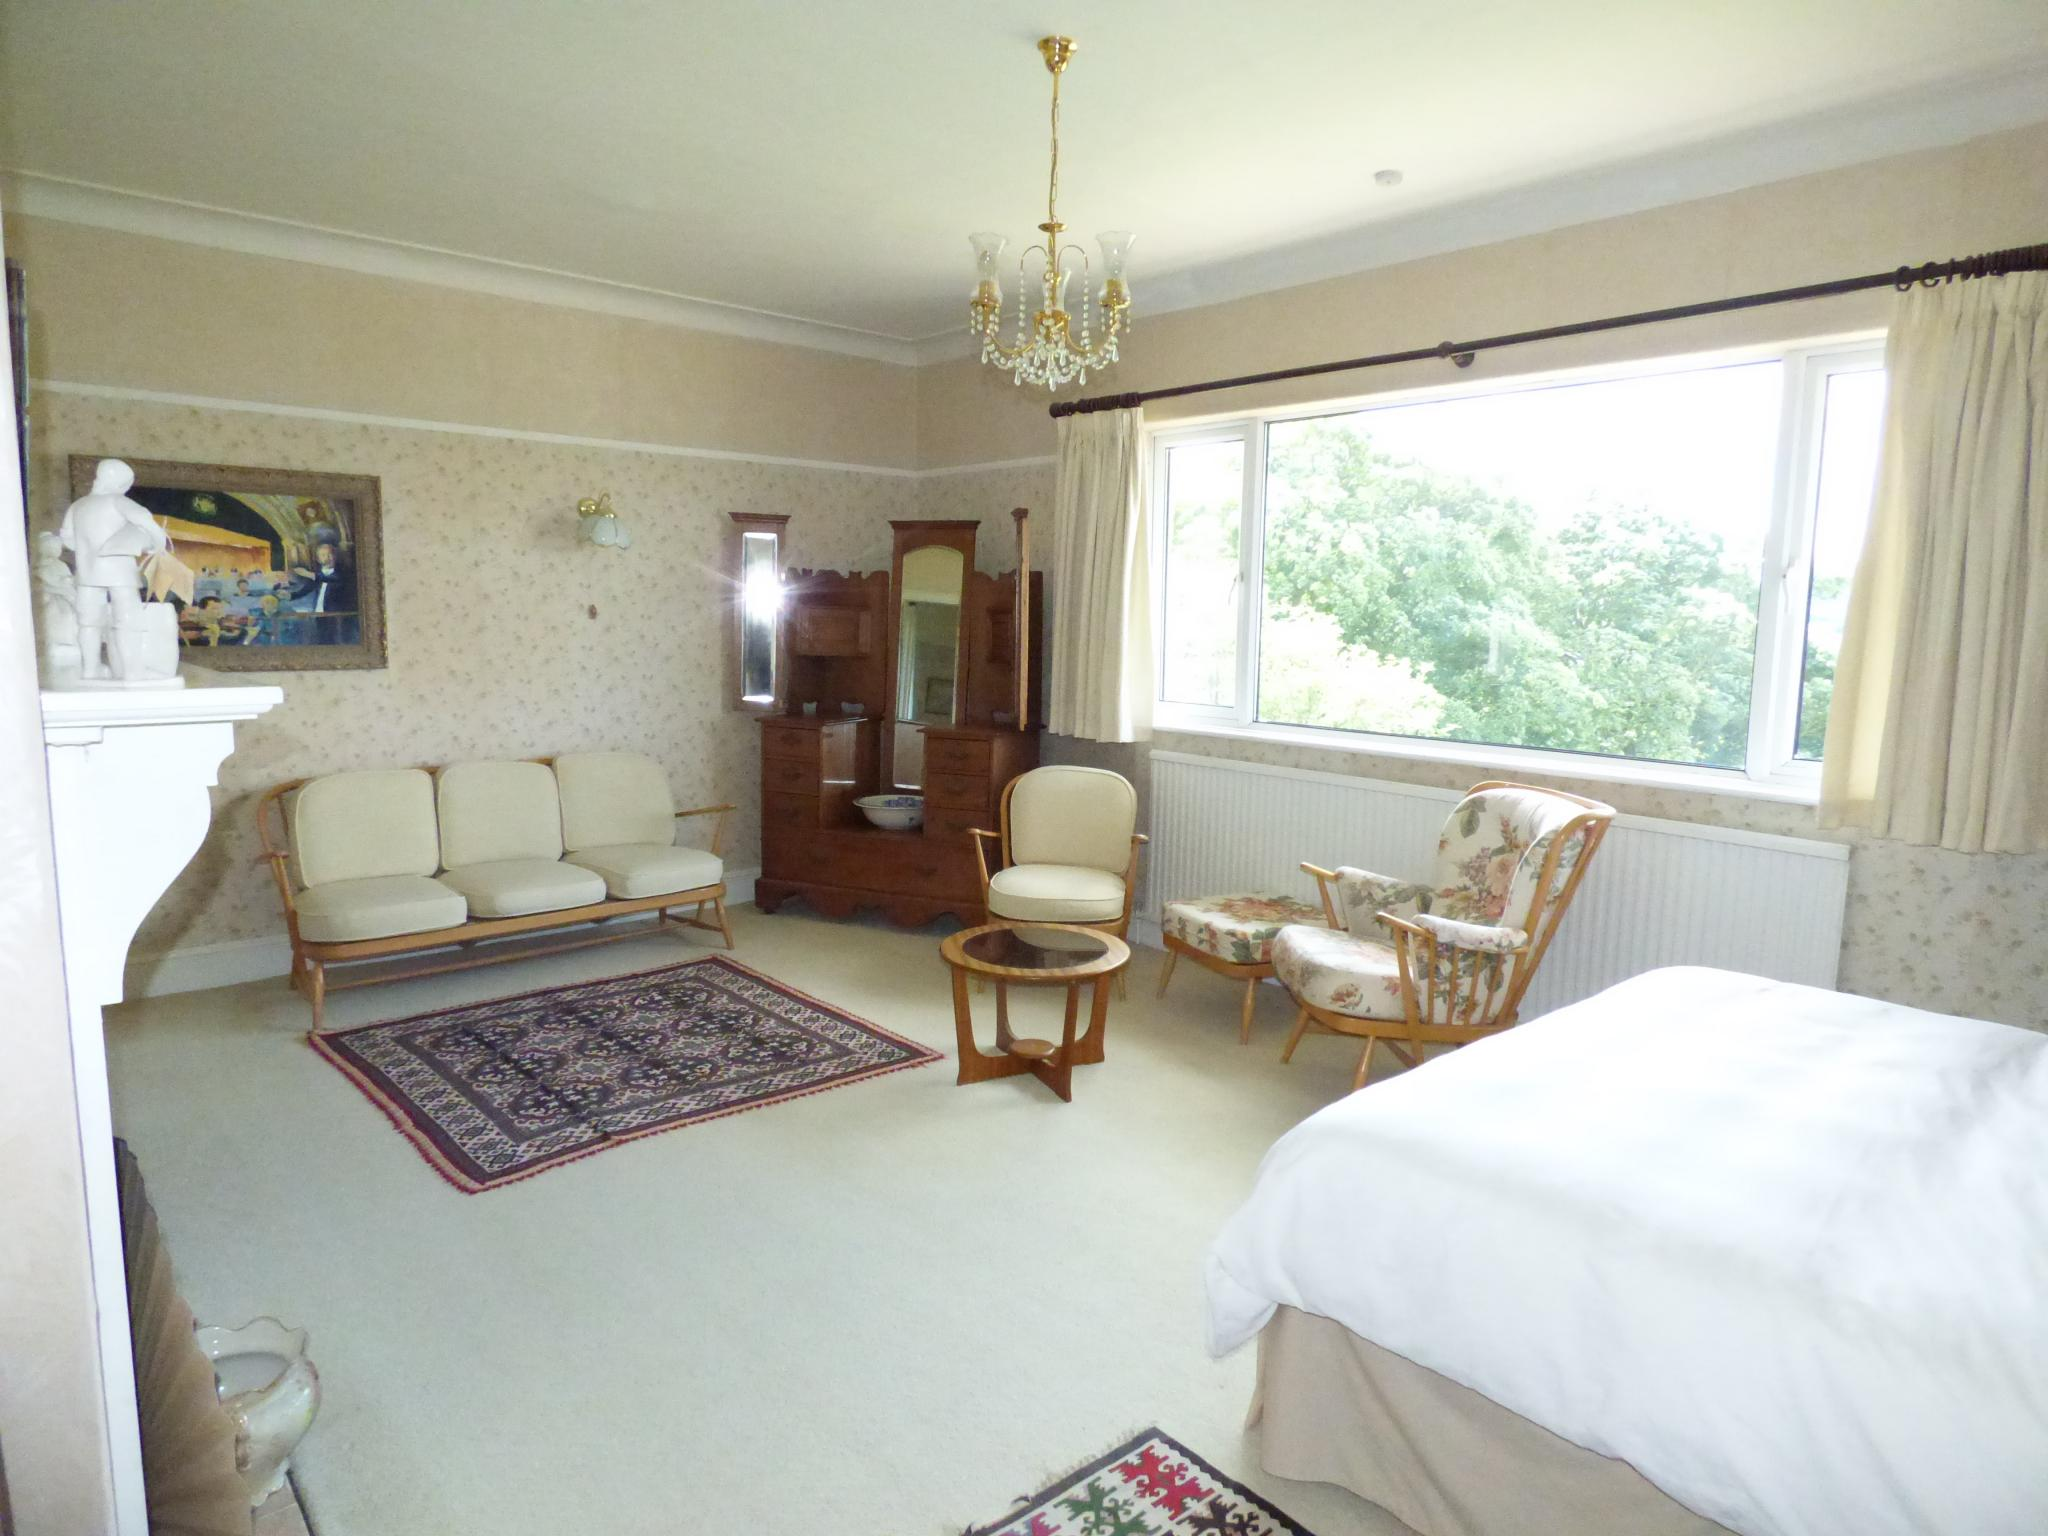 7 Bedroom Detached House For Sale - Photograph 32